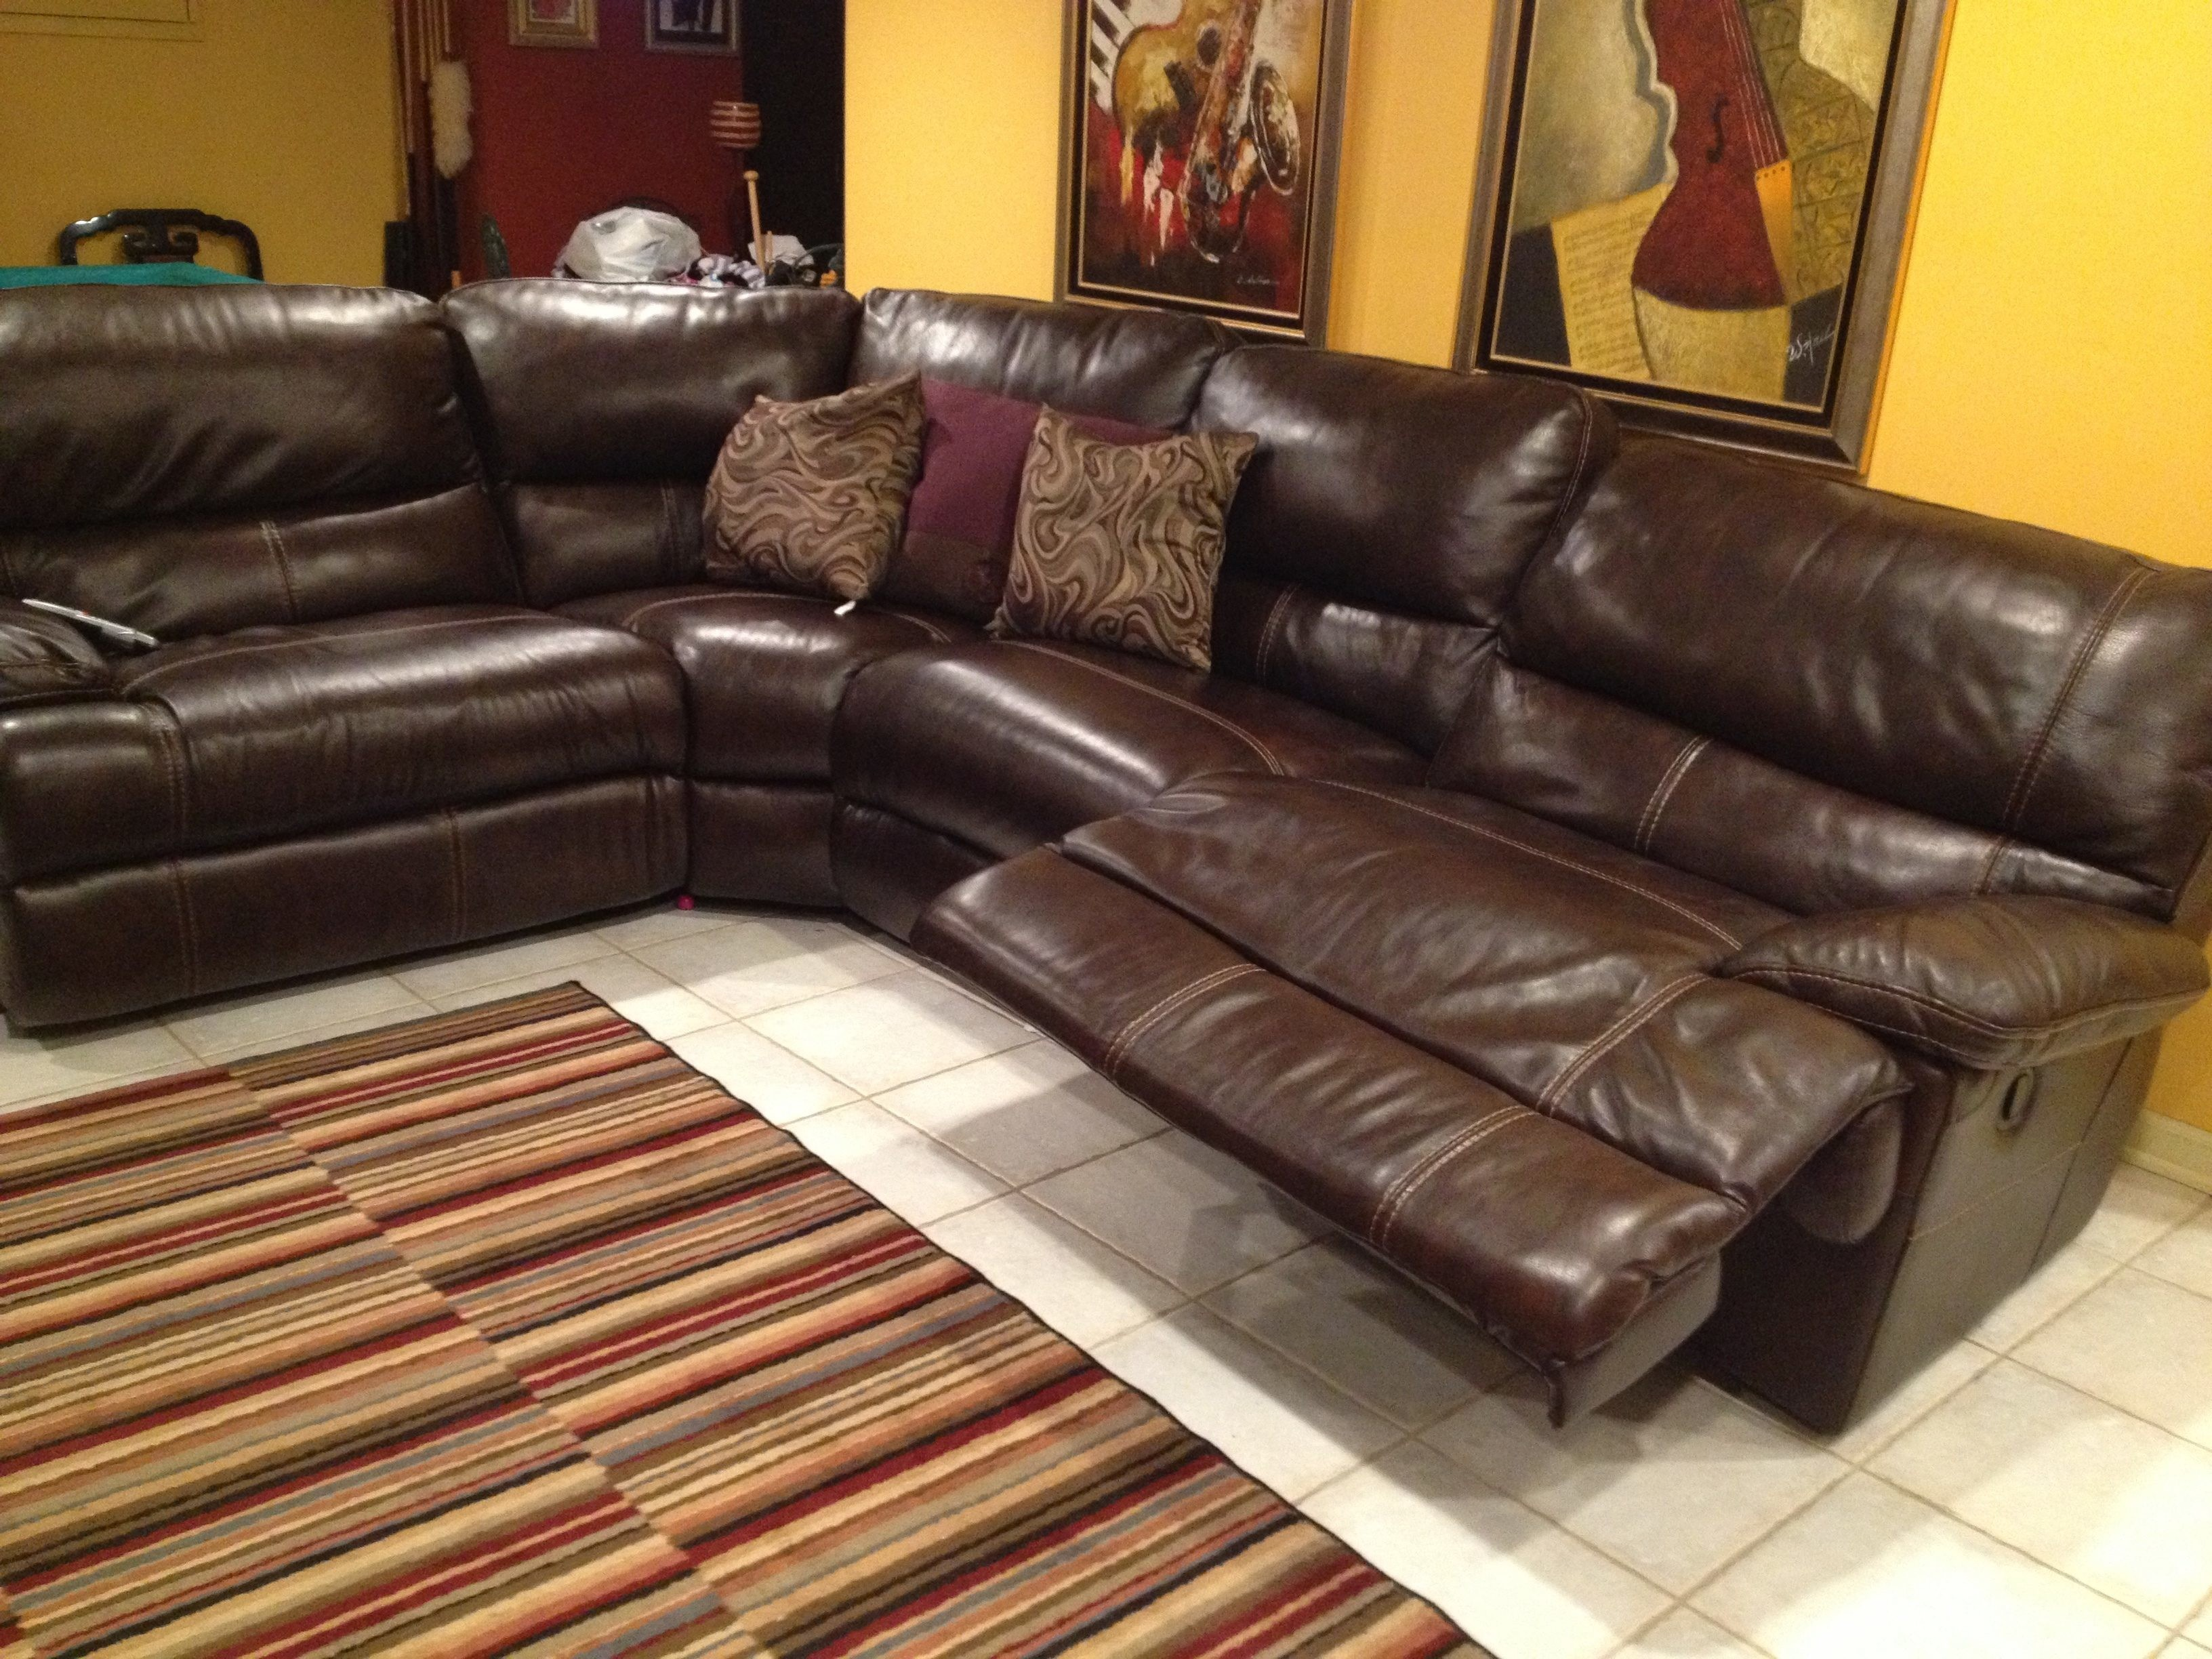 Bassett sofa Reviews Sensational Great Bassett sofa Reviews Modern sofa Inspiration with Online